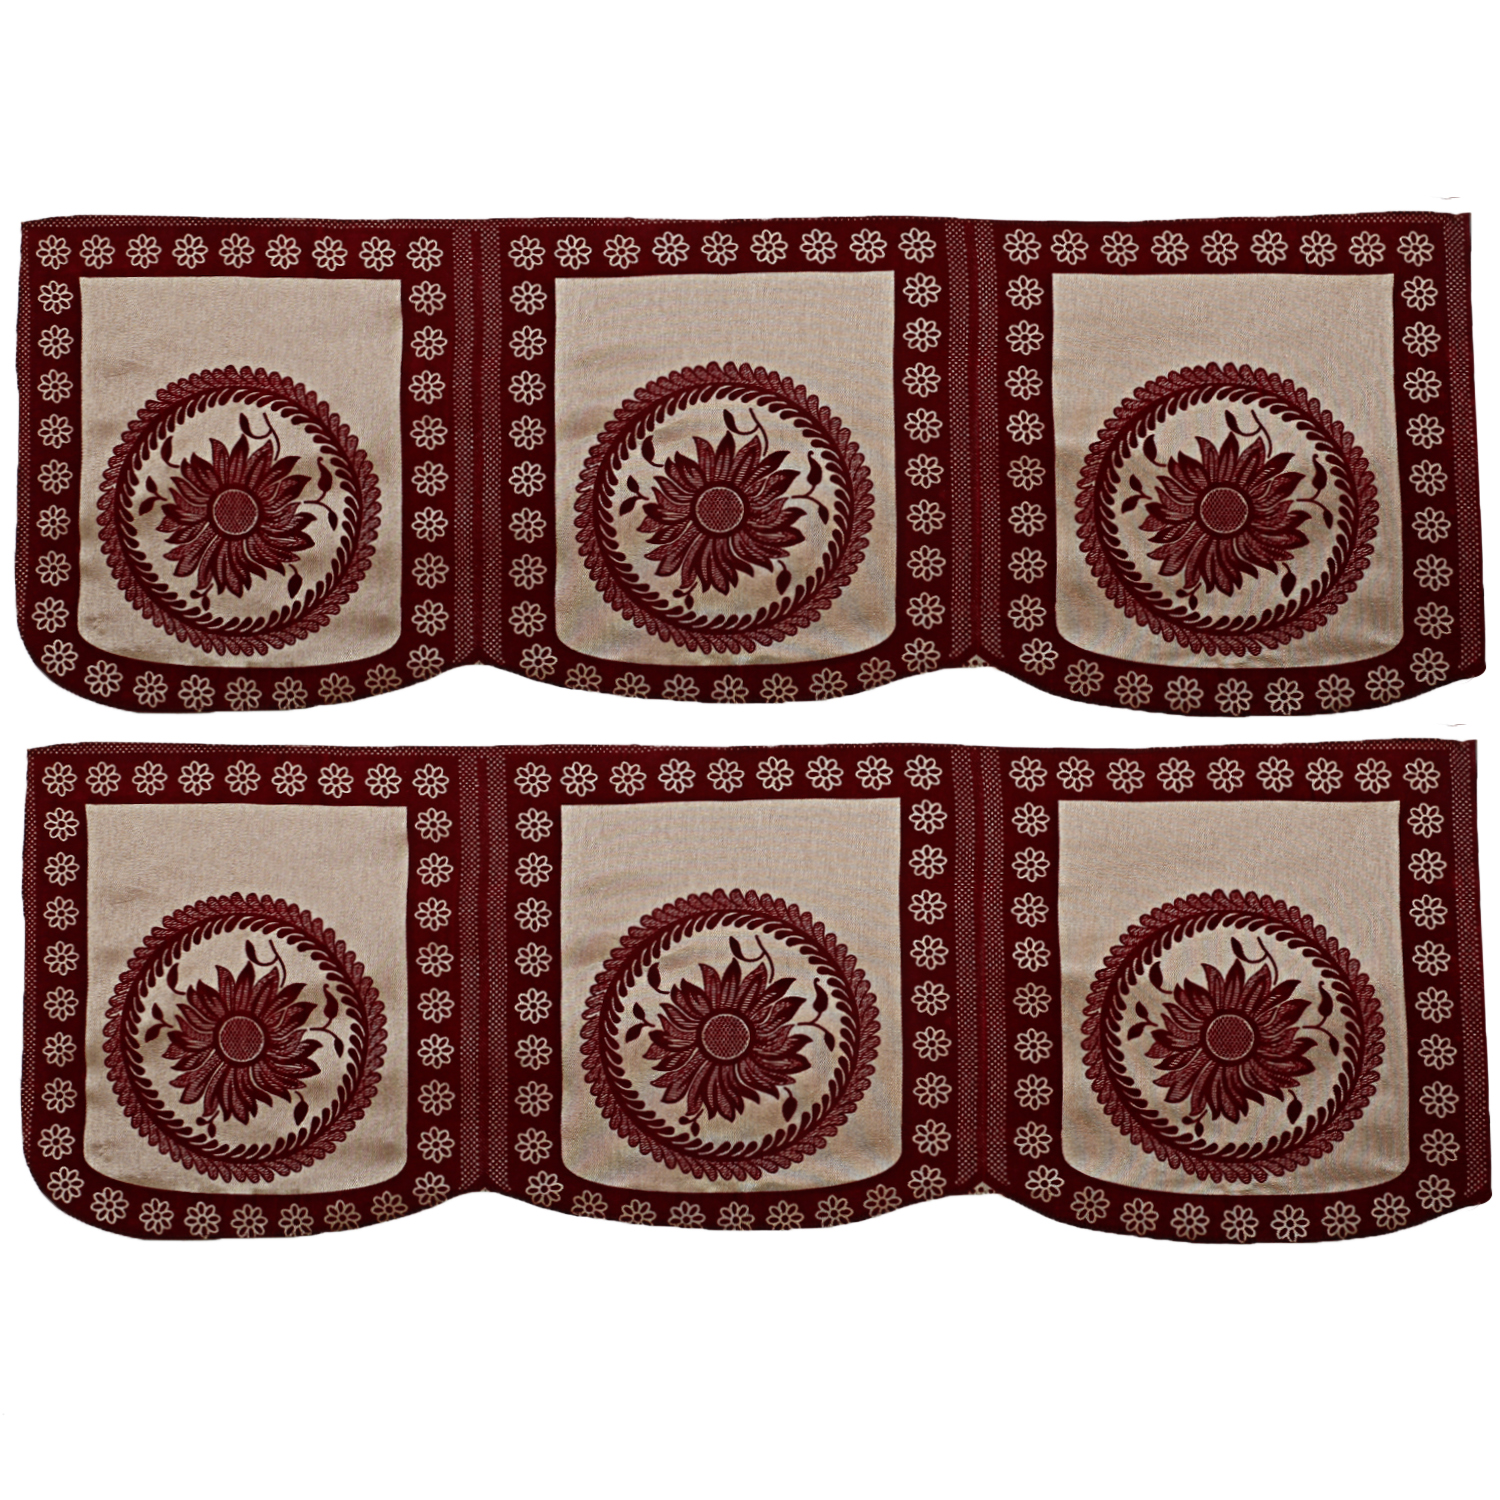 Kuber Inudustries Velvet 6 Pieces 5 Seater Sofa Cover Set (Maroon)-CTKTC3488